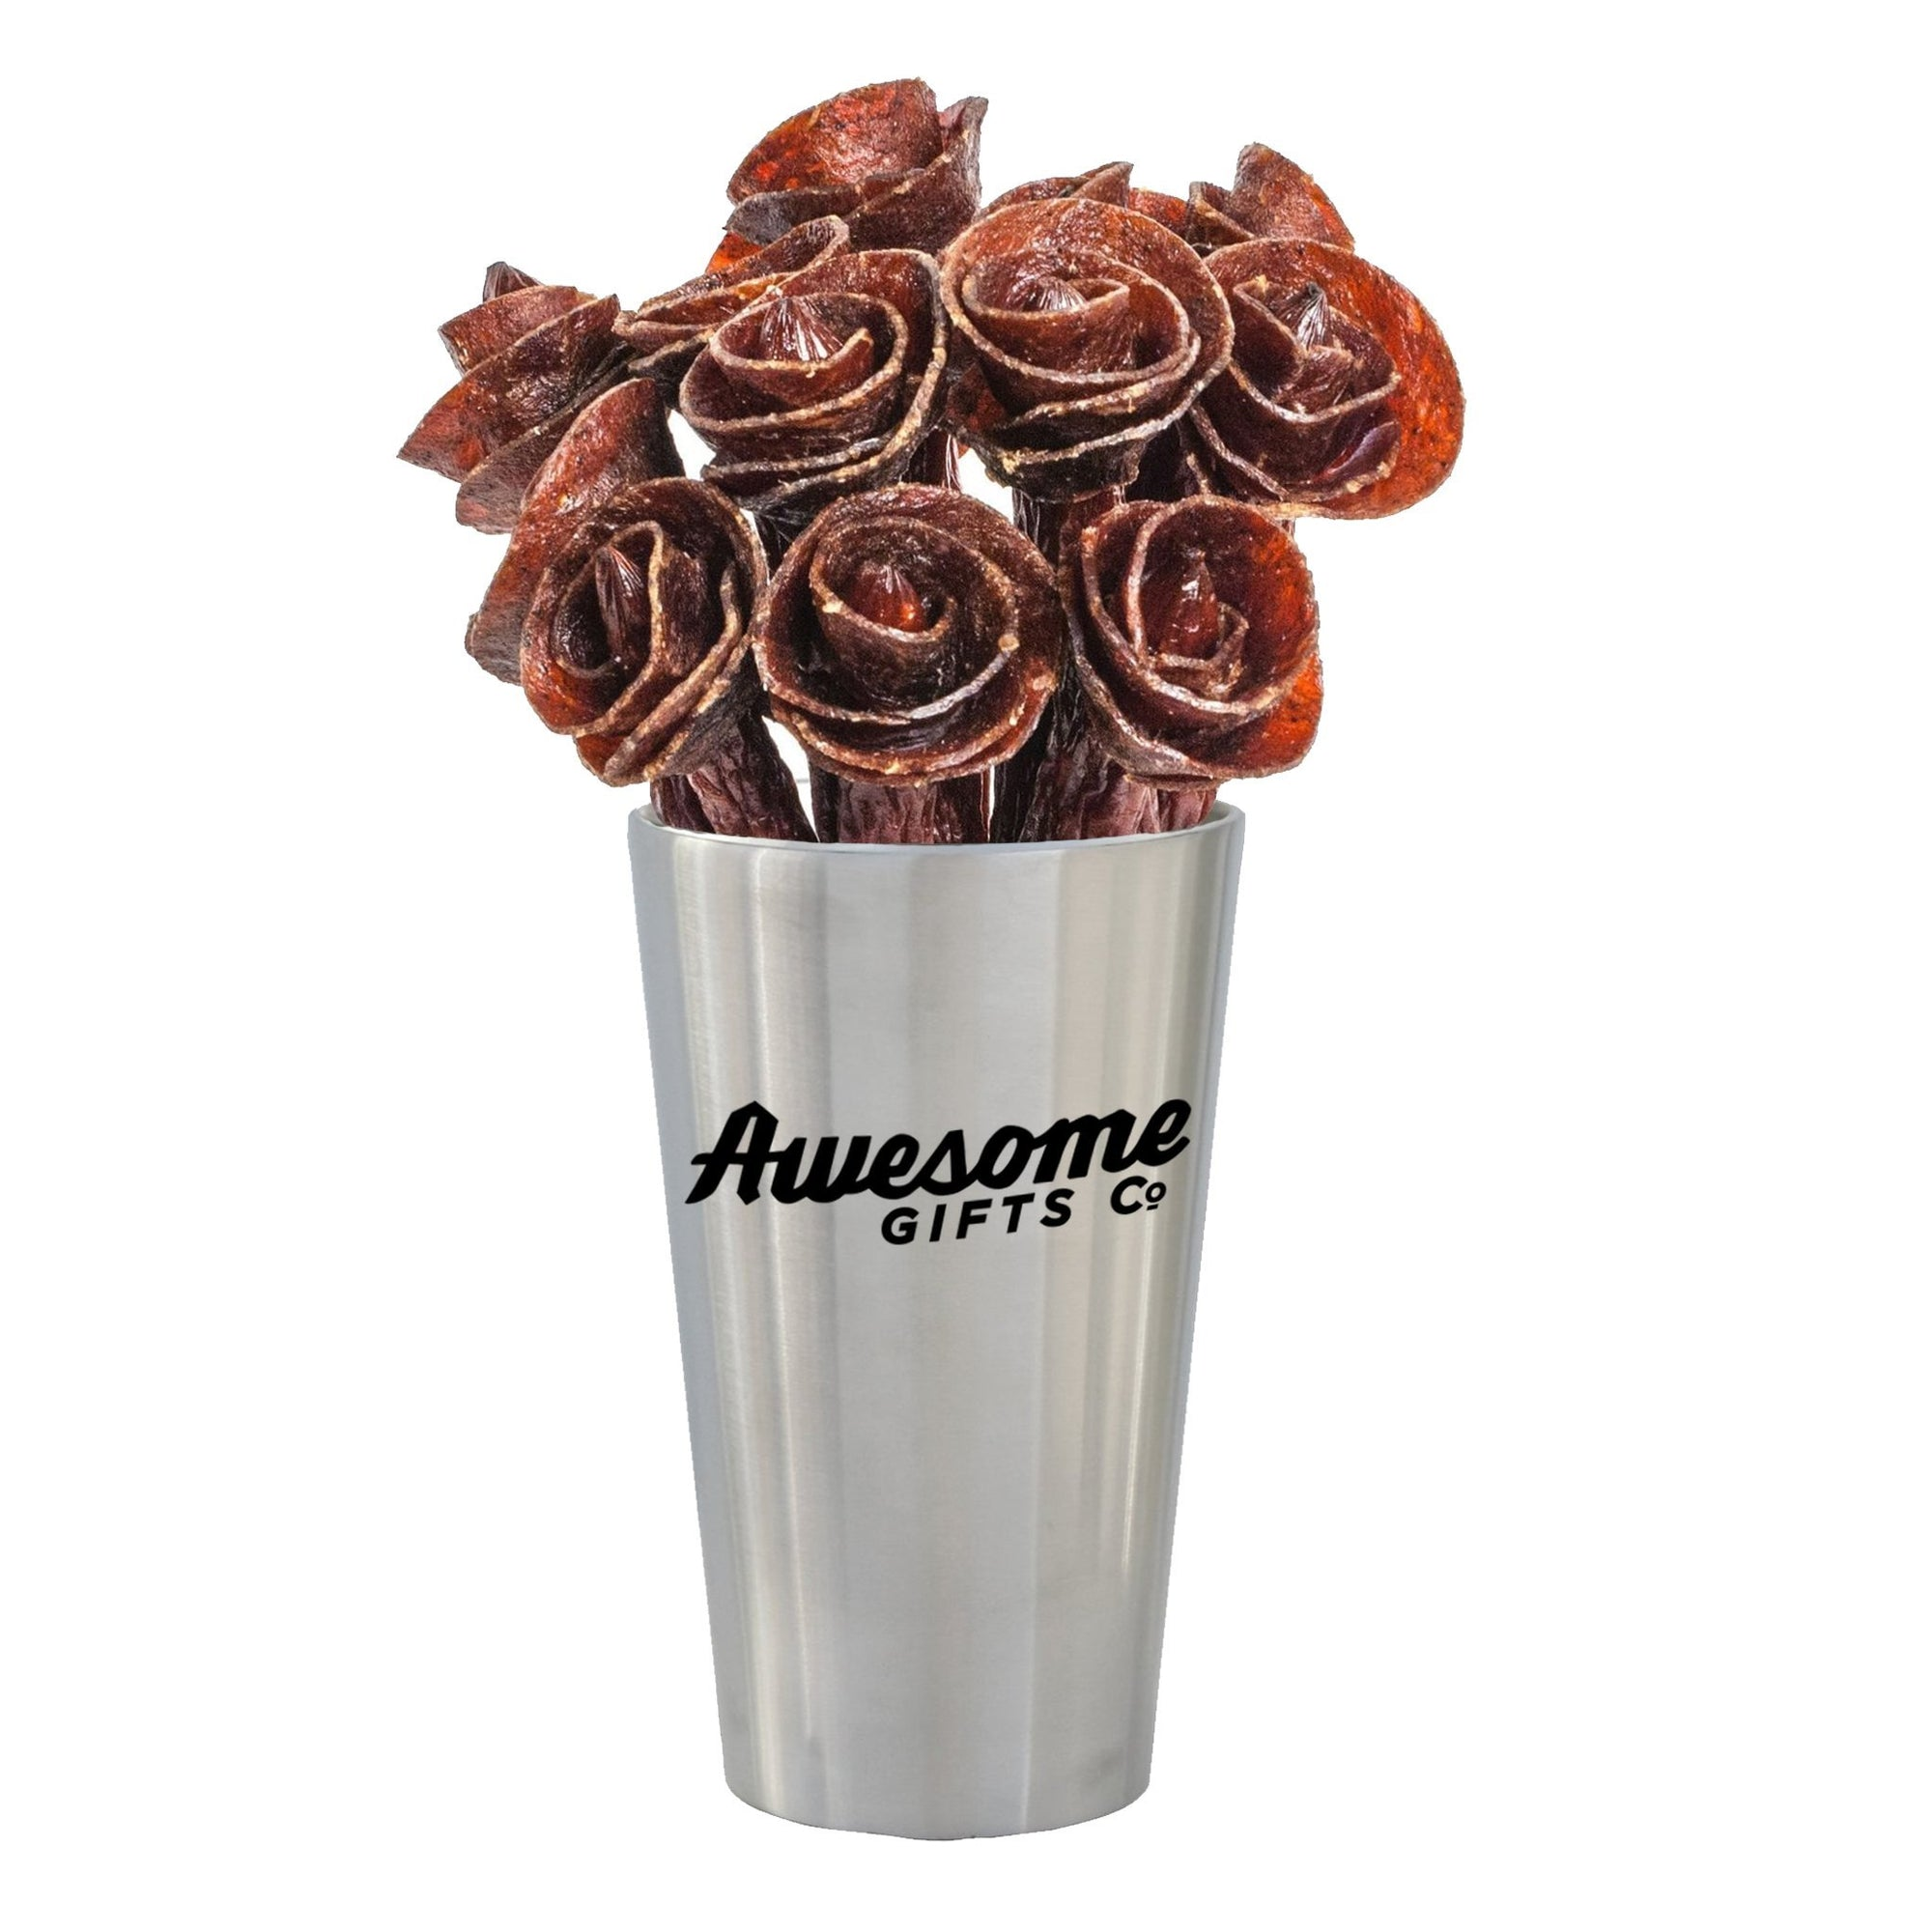 Beef Jerky Rose Bouquet - Stainless Steel Edition